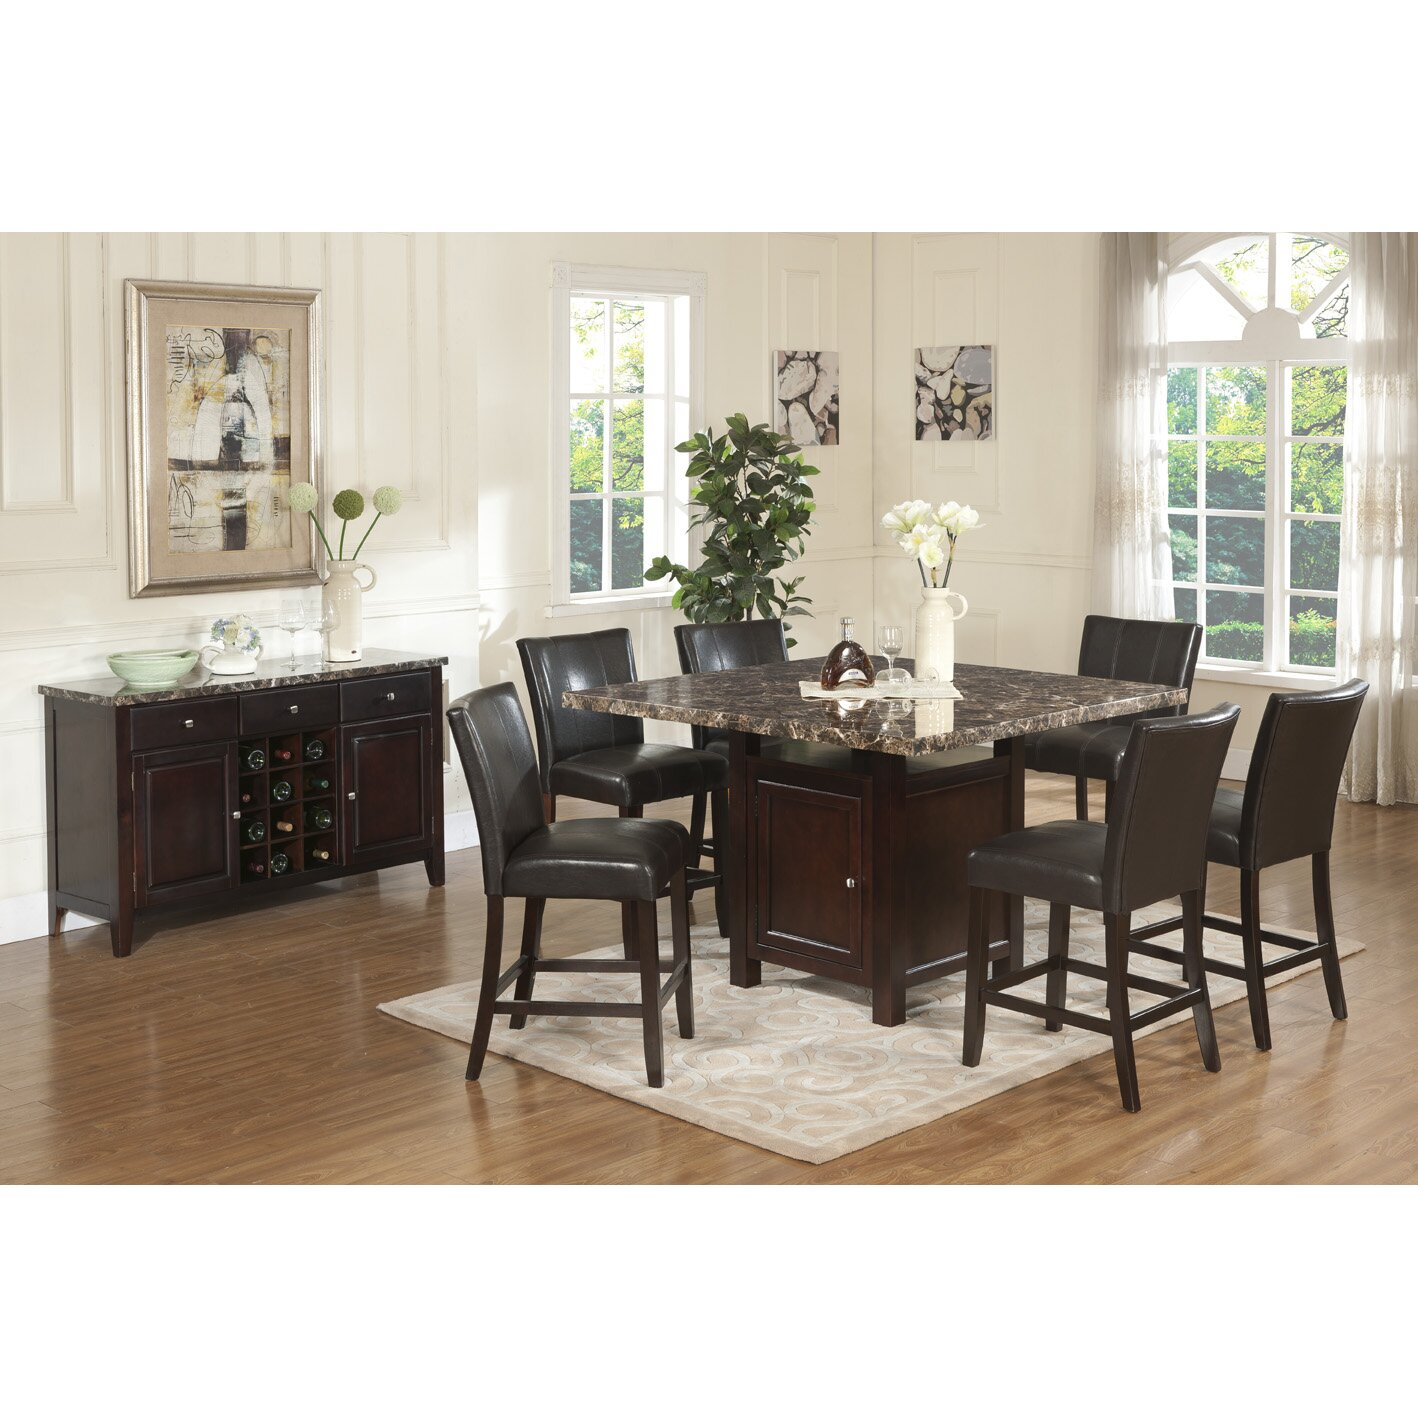 7 Piece Counter Height Dining Room Sets: In Style Ashley 7 Piece Counter Height Dining Set Amp